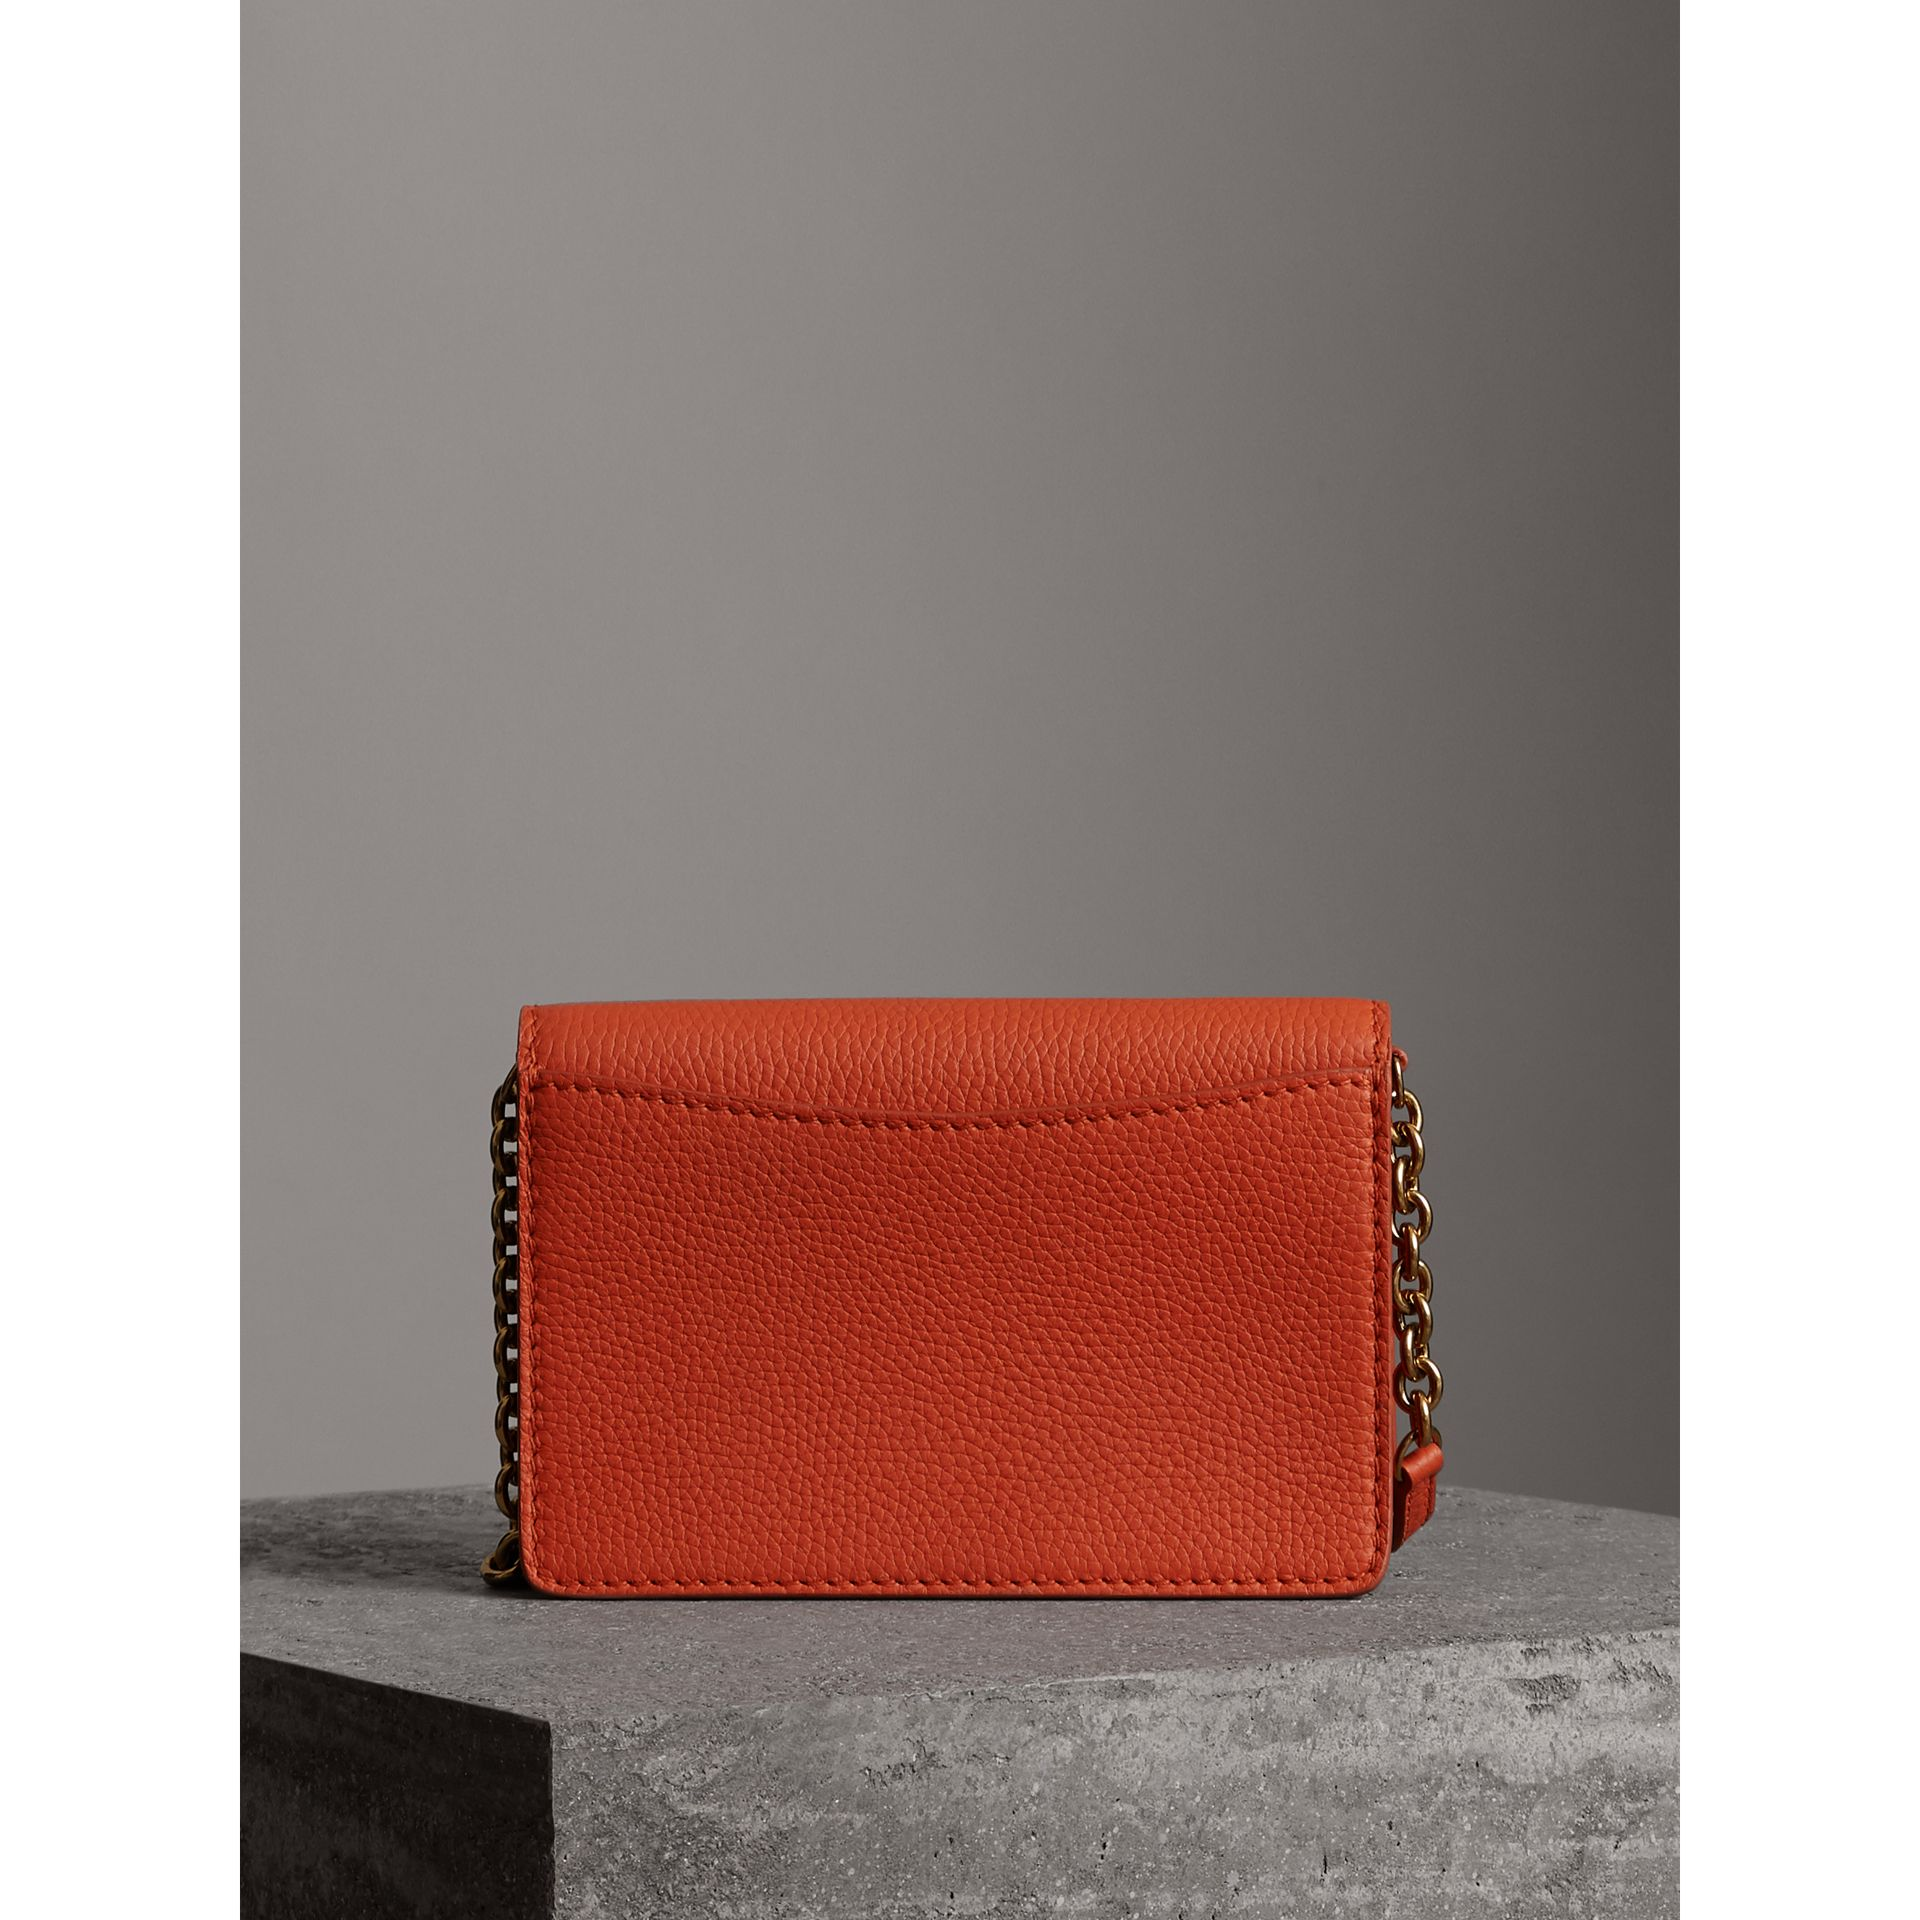 Embossed Leather Wallet with Detachable Strap in Dark Clementine - Women | Burberry - gallery image 6